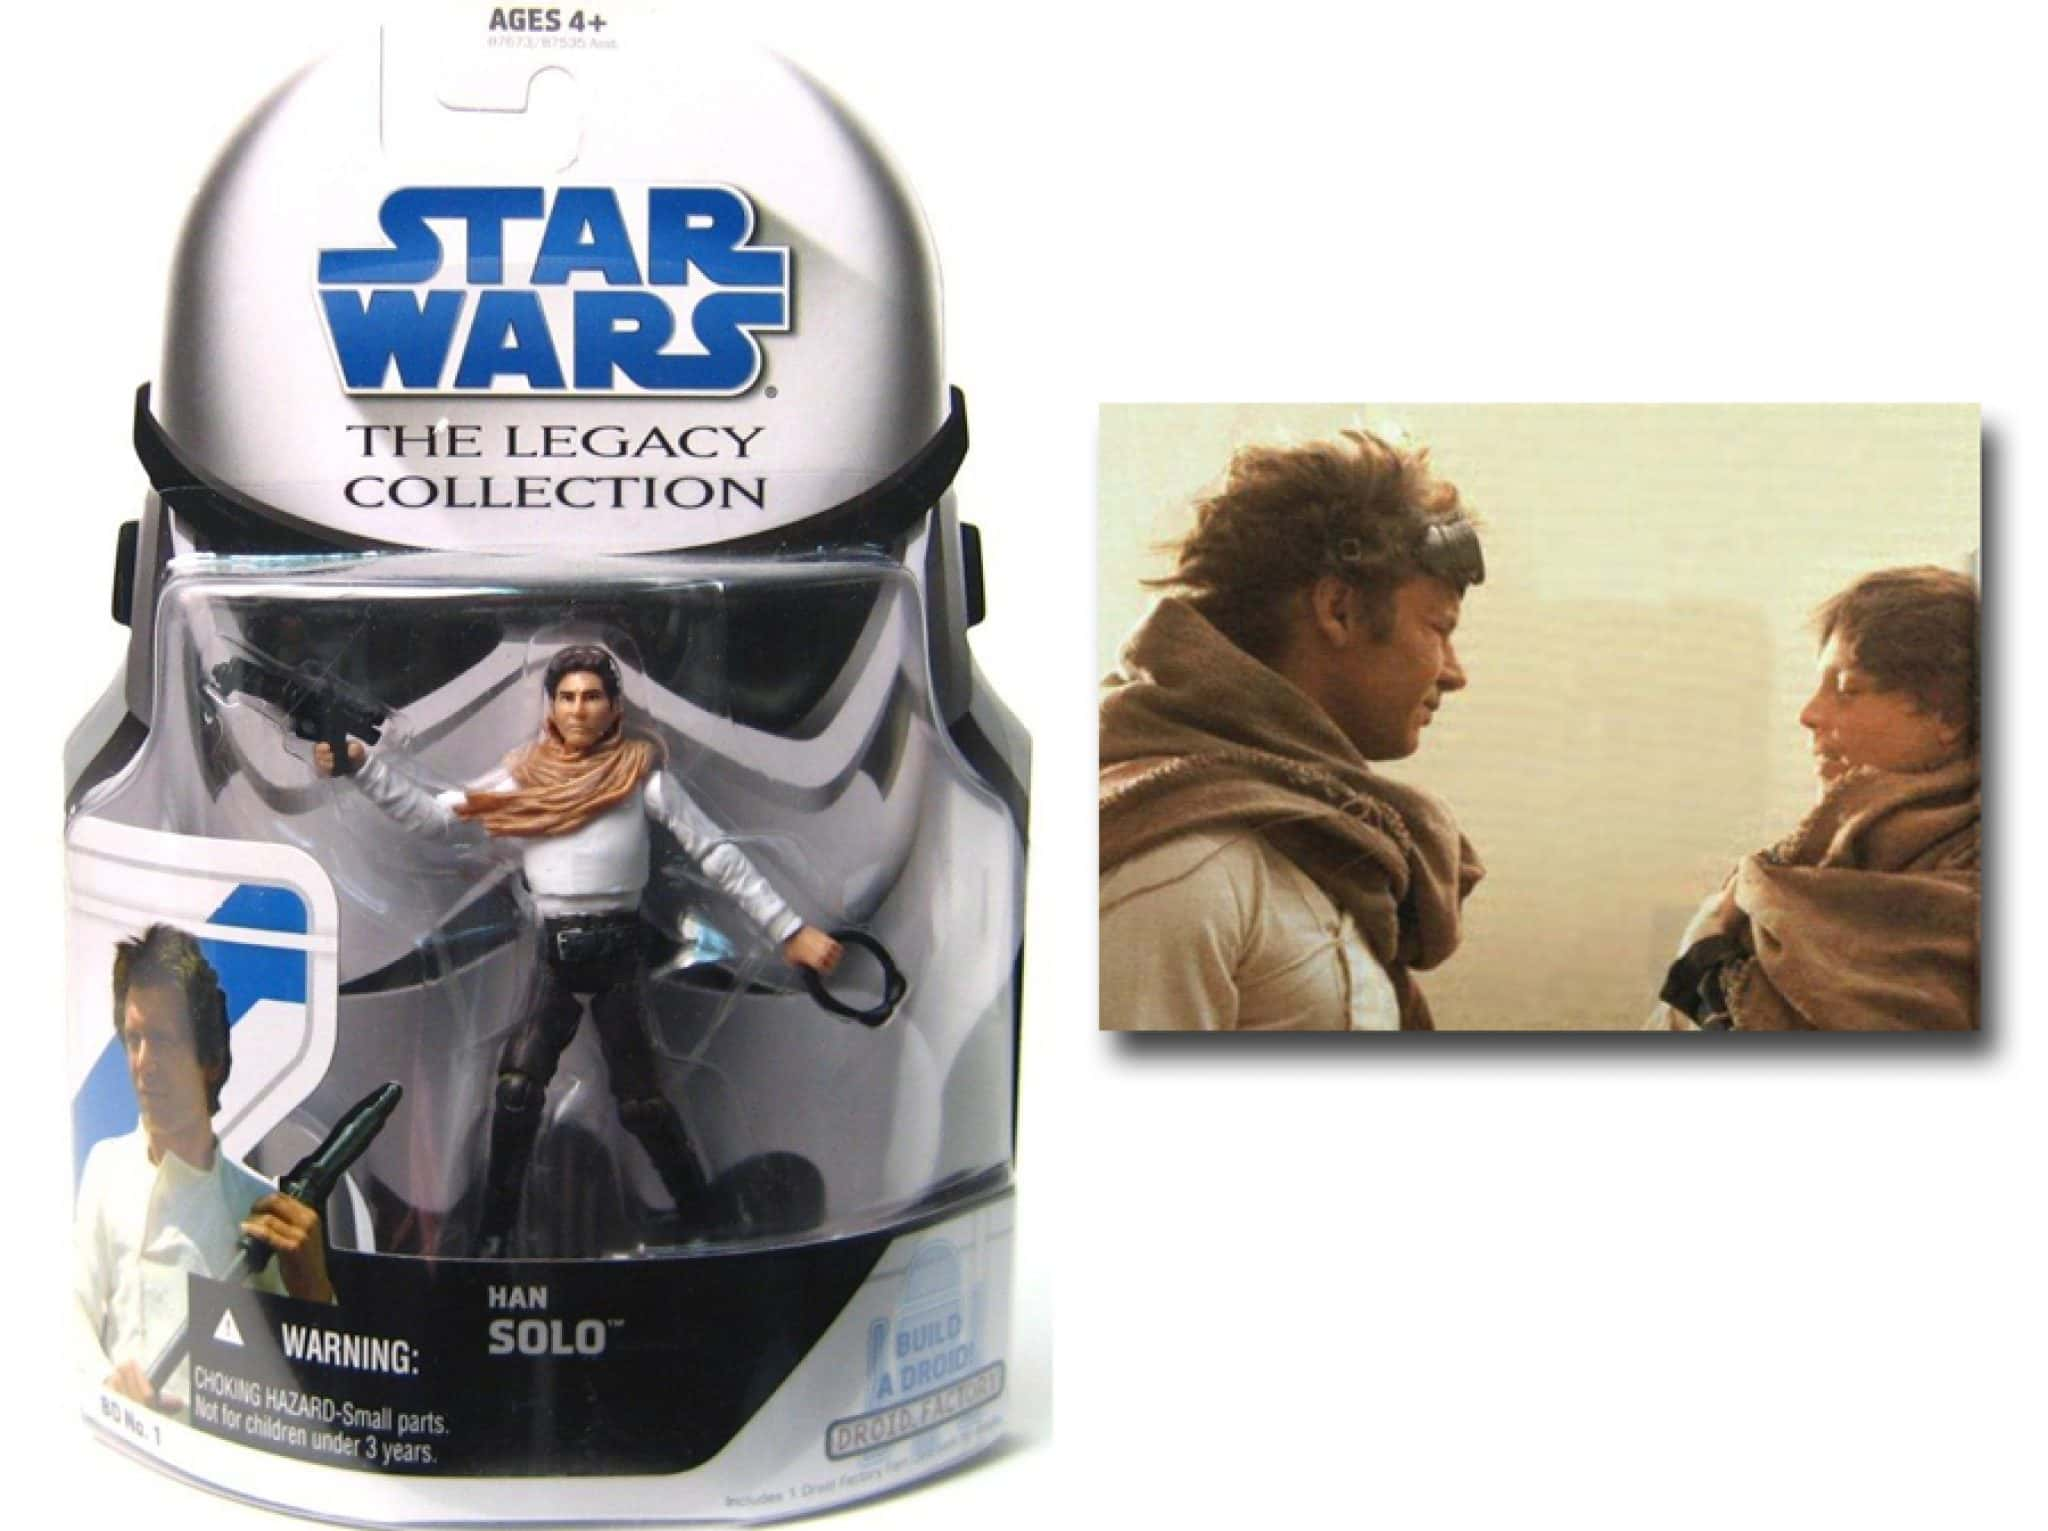 Han Solo (Sandstorm - The Legacy Collection, 2008)